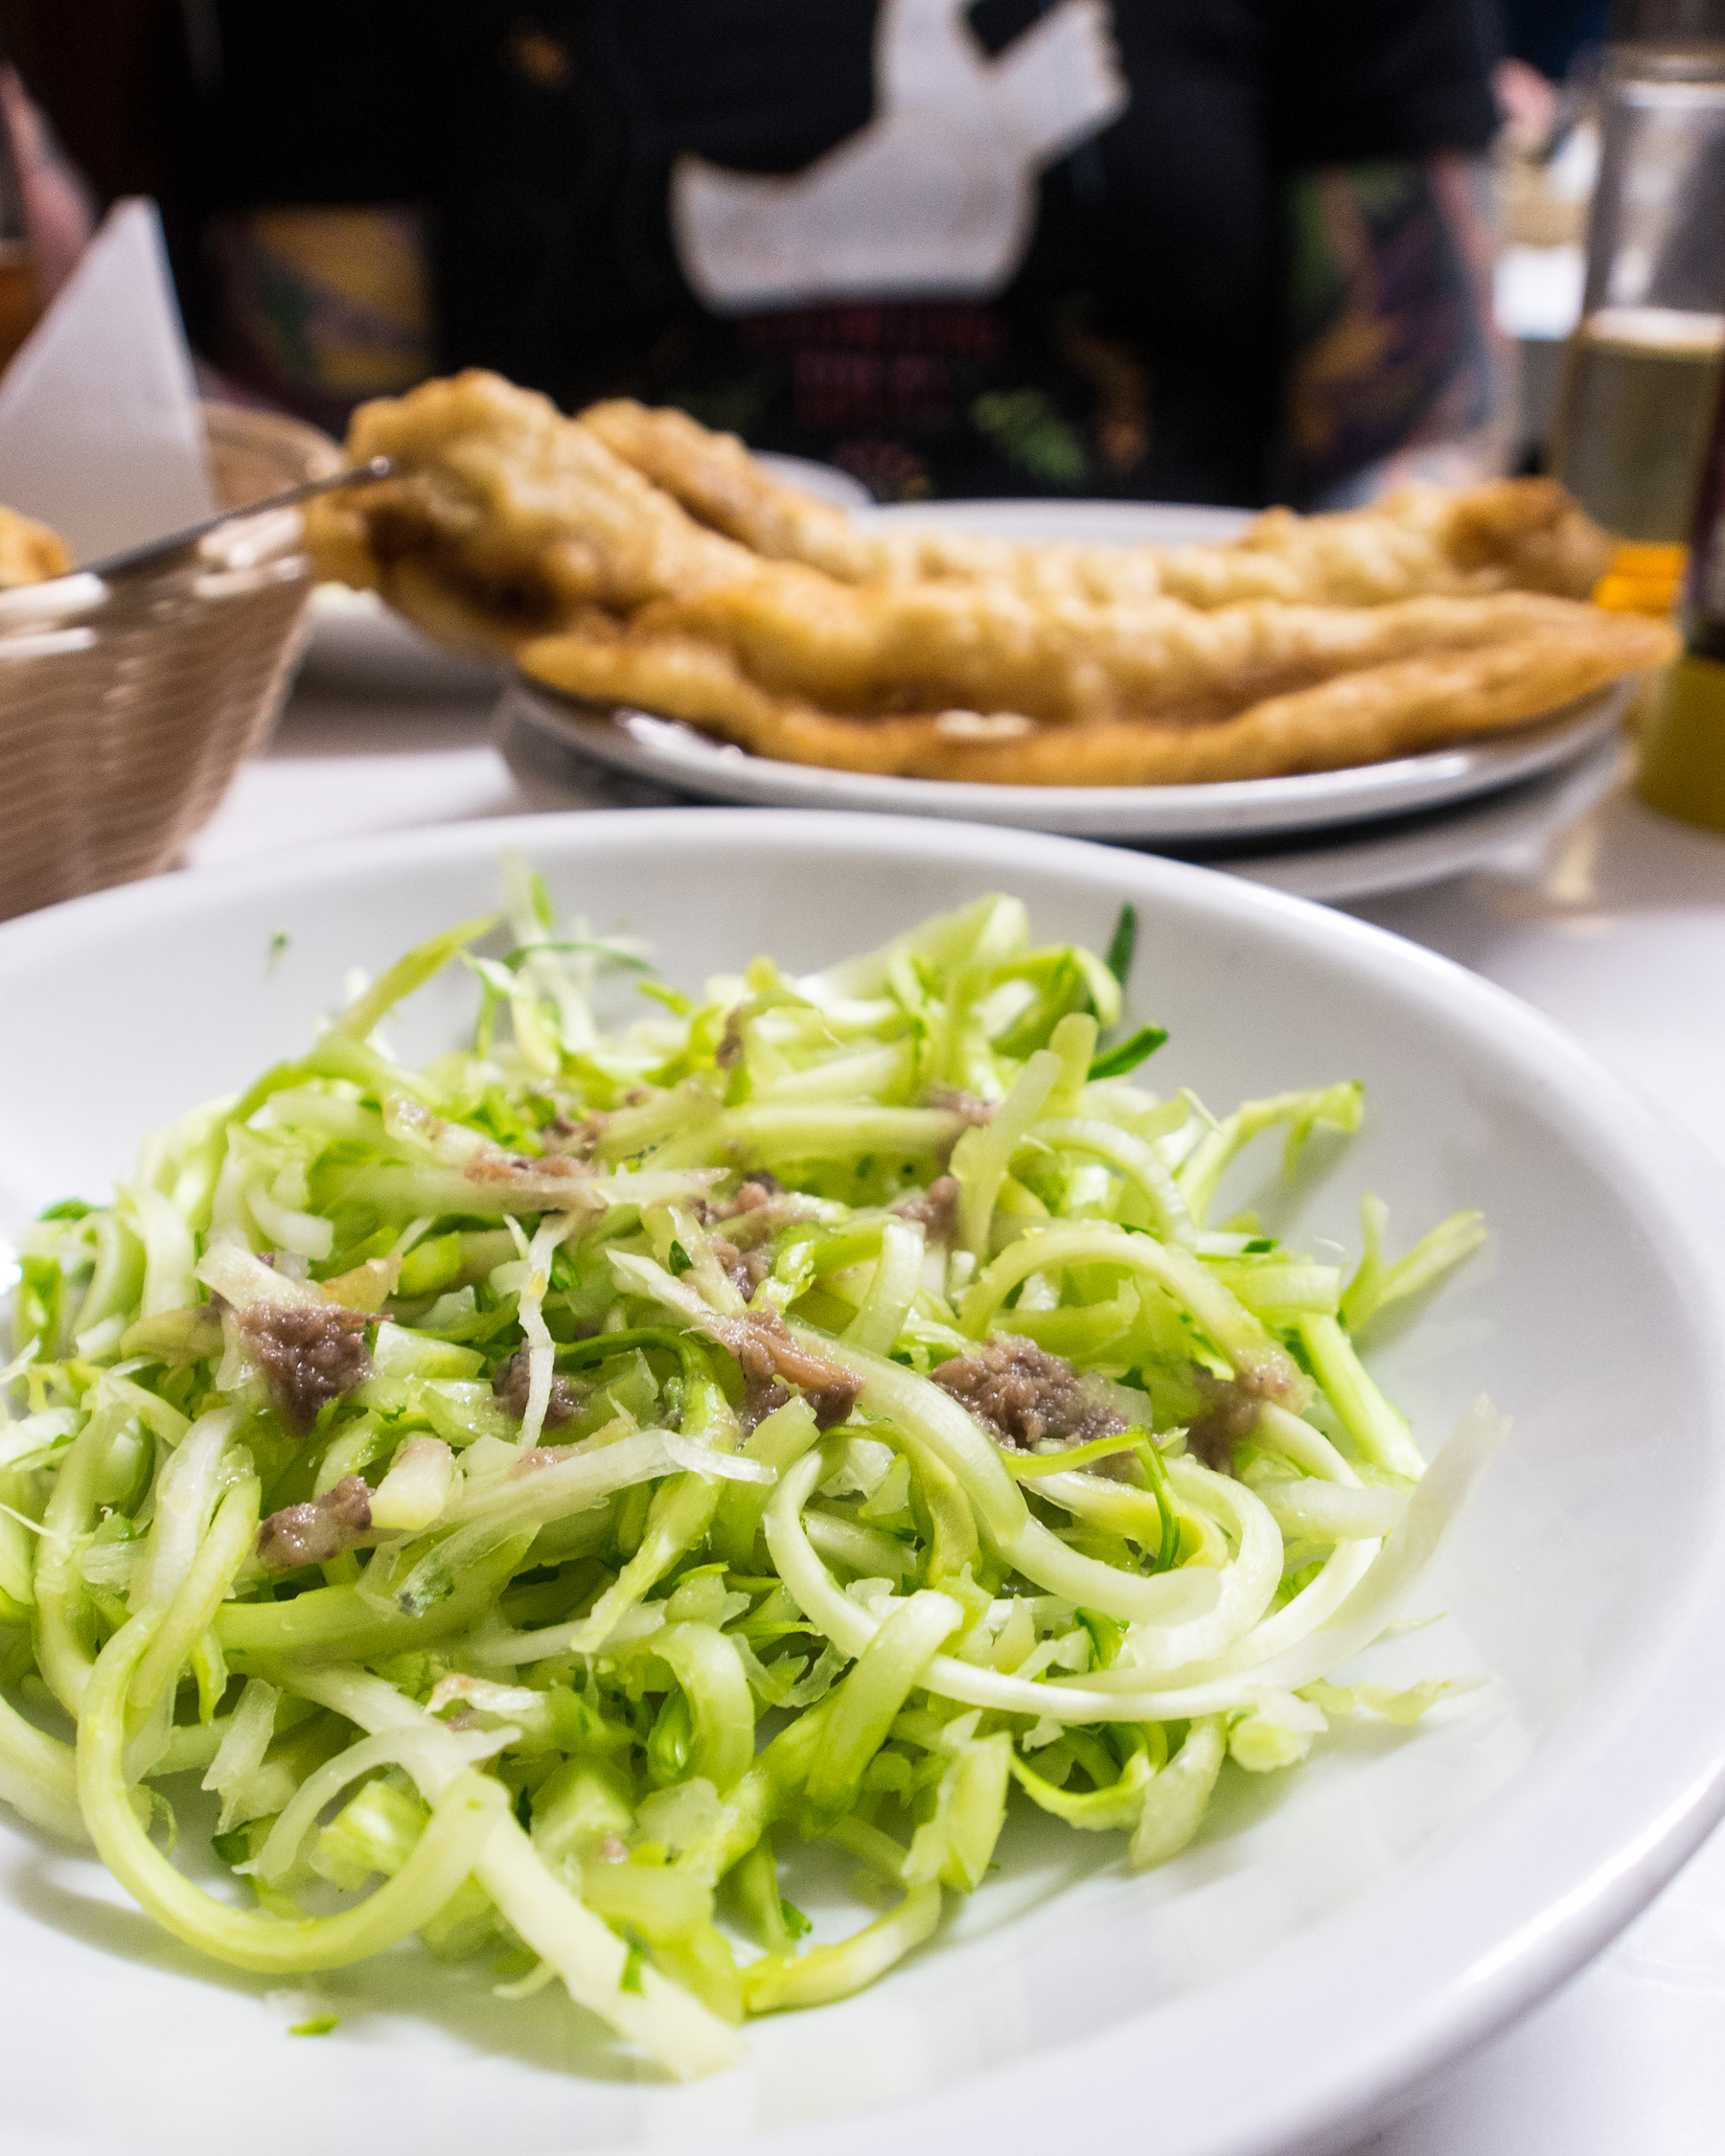 Italian puntarelle salad in a white bowl made from chicory.